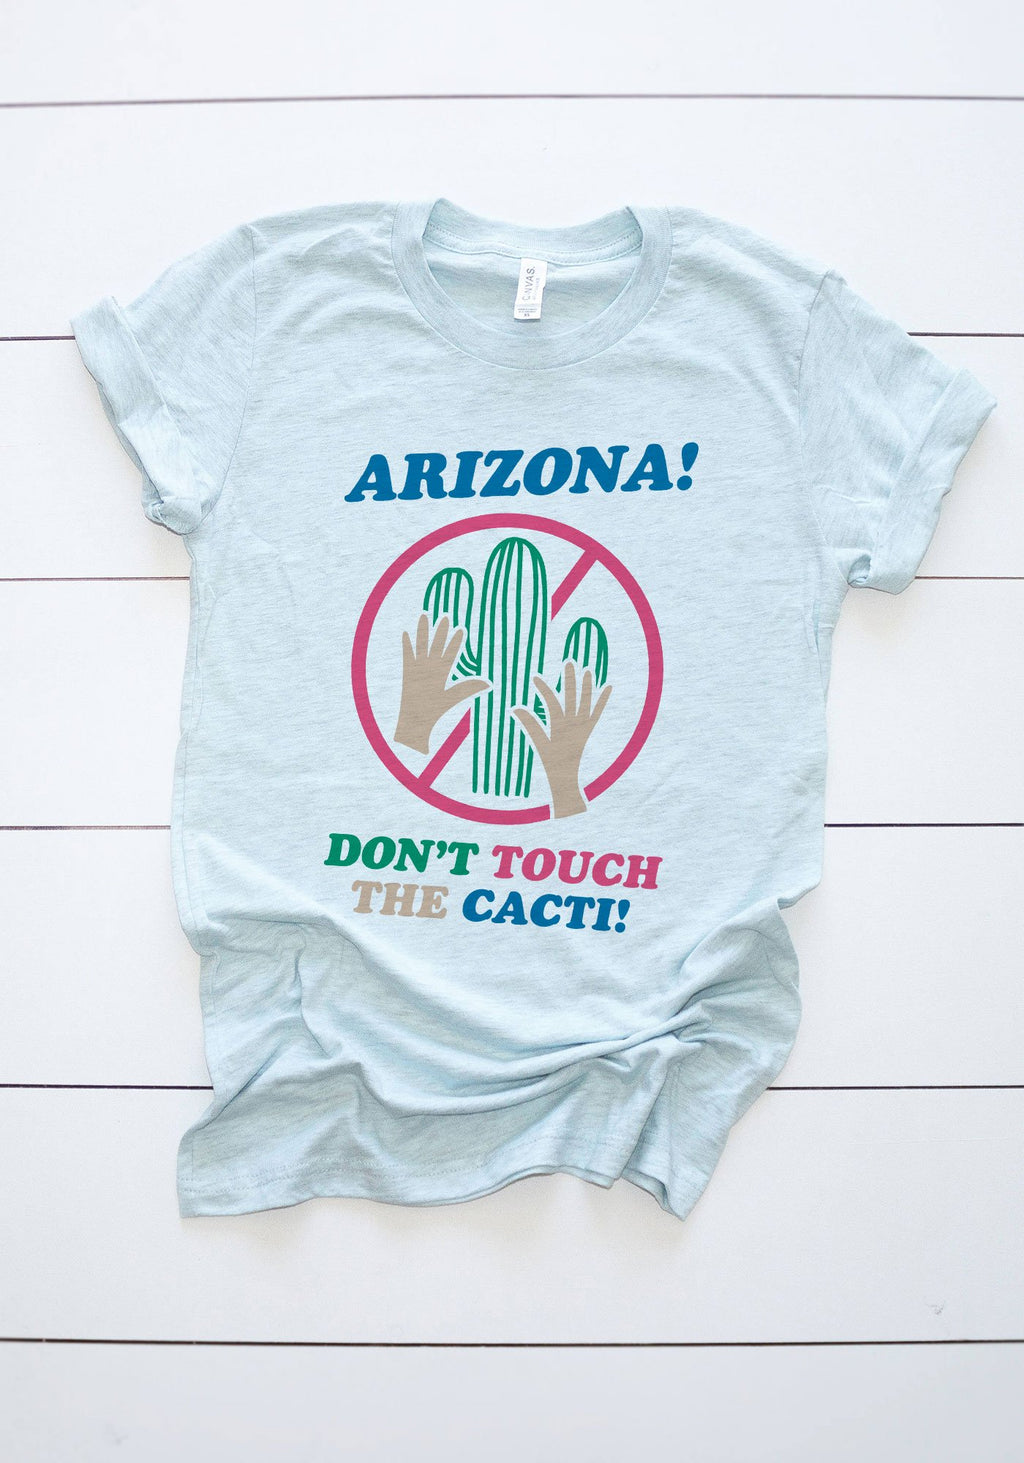 Don't Touch the Cacti Tee / womens graphic tees / 70s retro vintage style western t shirt / arizona southwest souvenir shirt